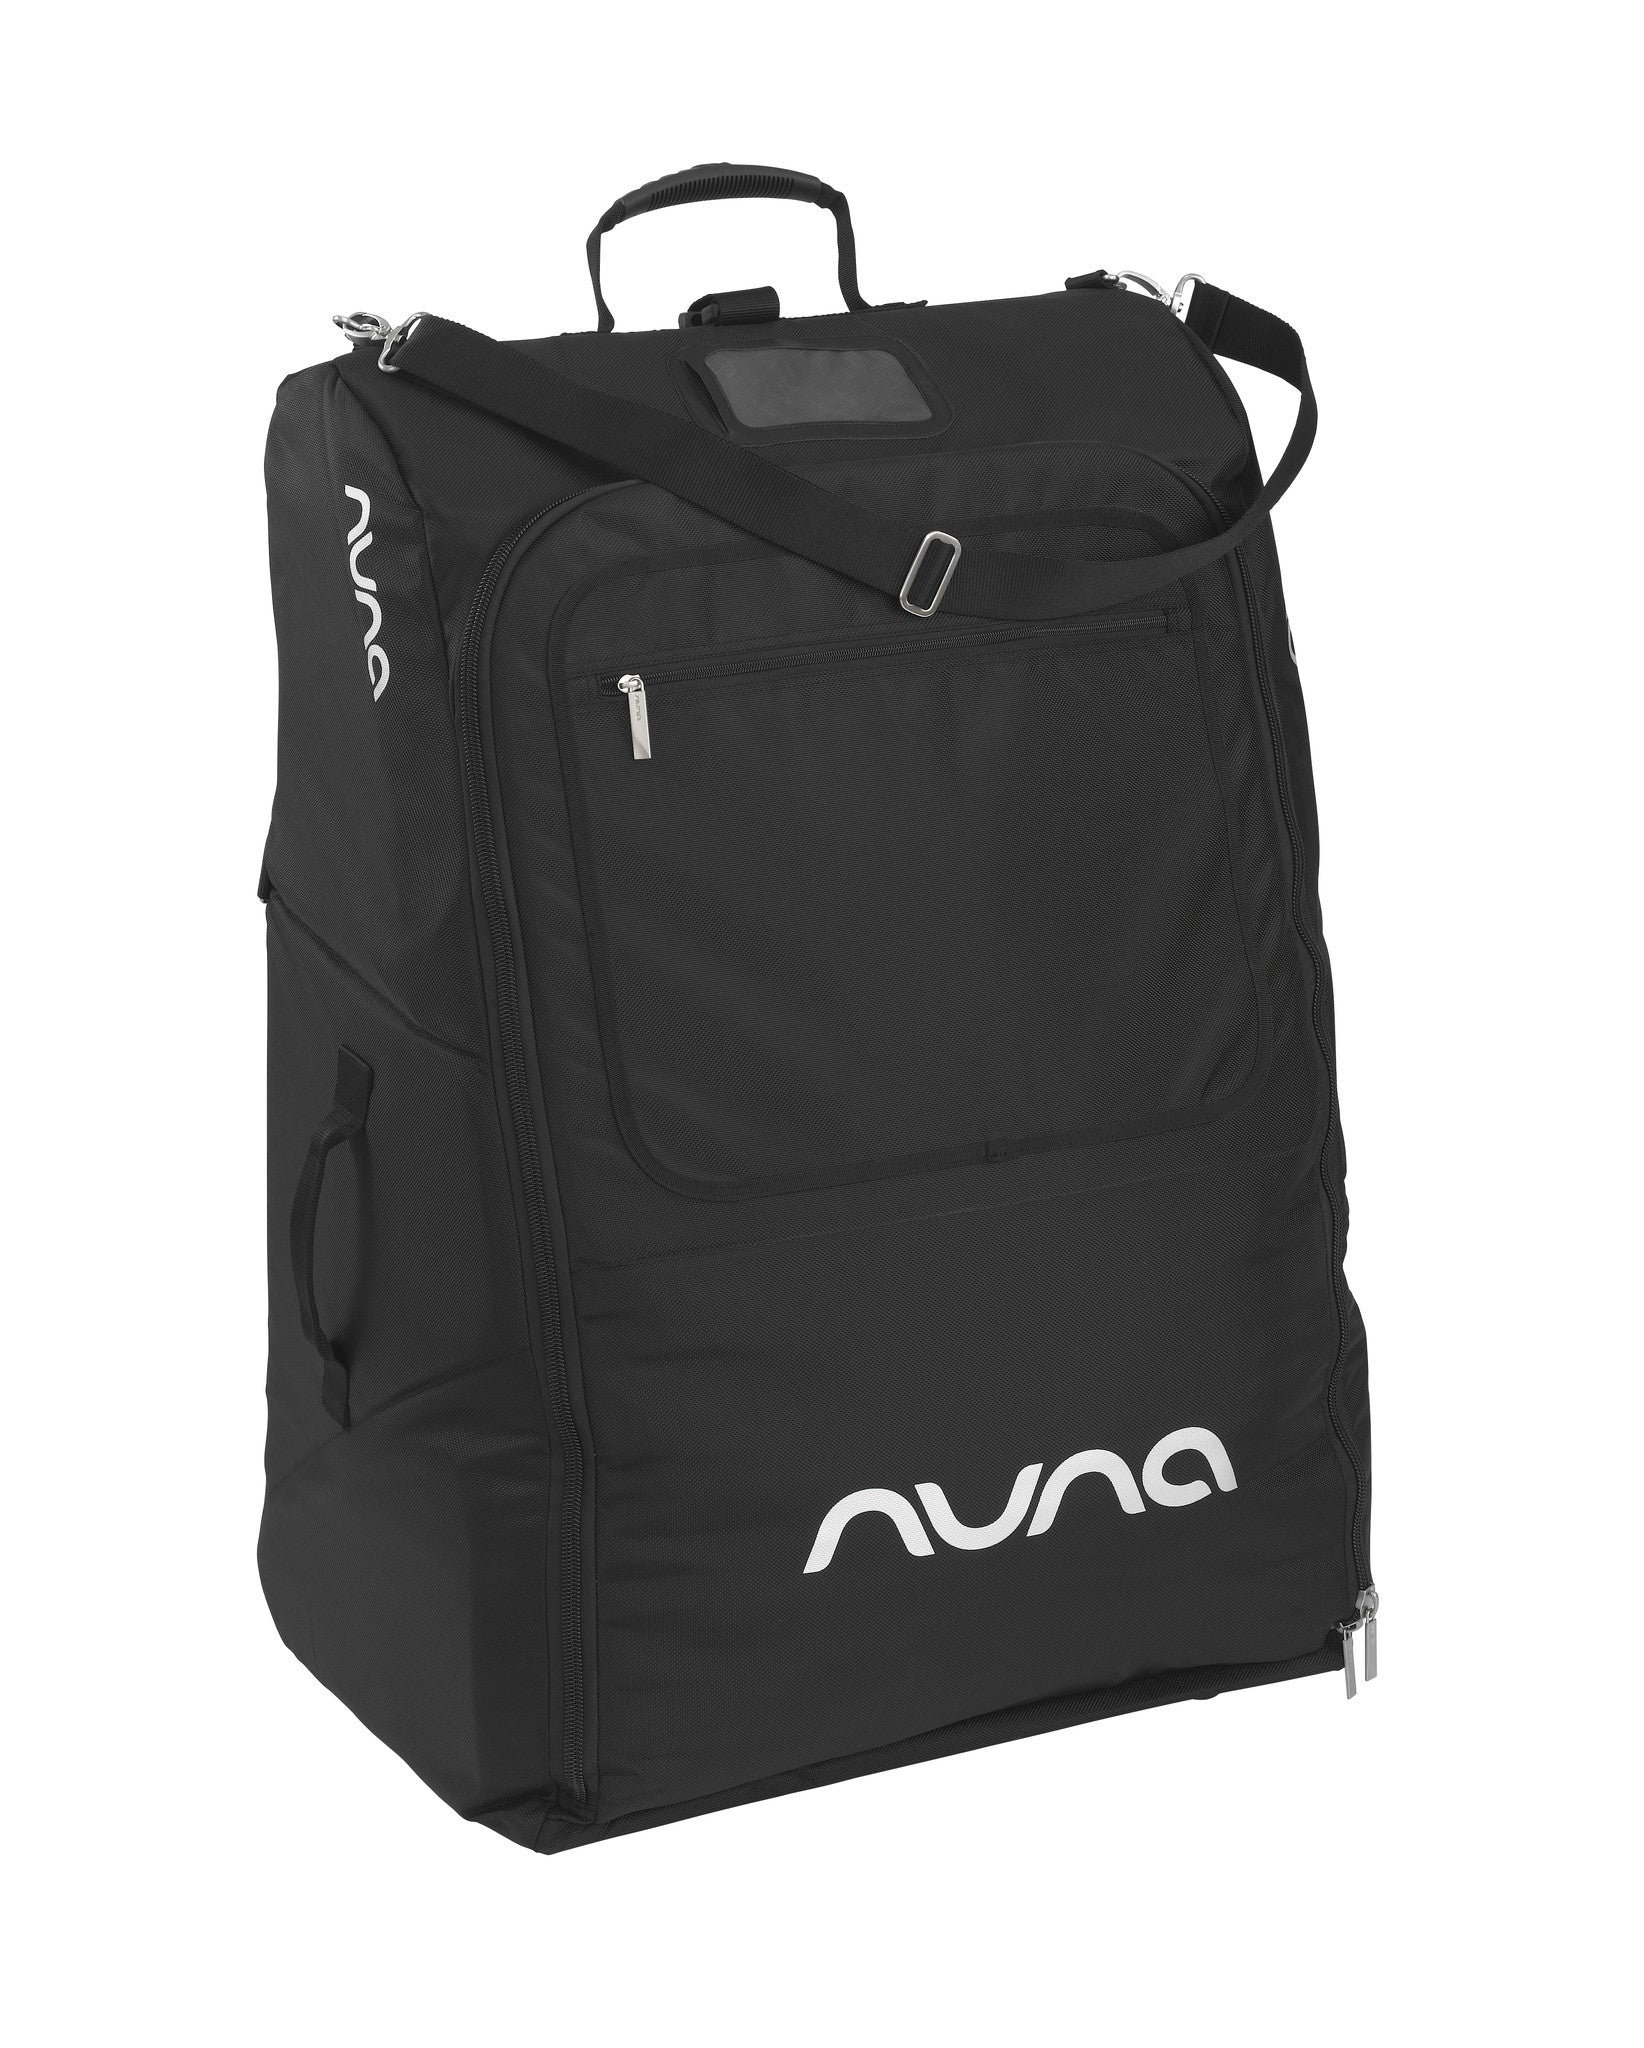 Nuna Travel Bag